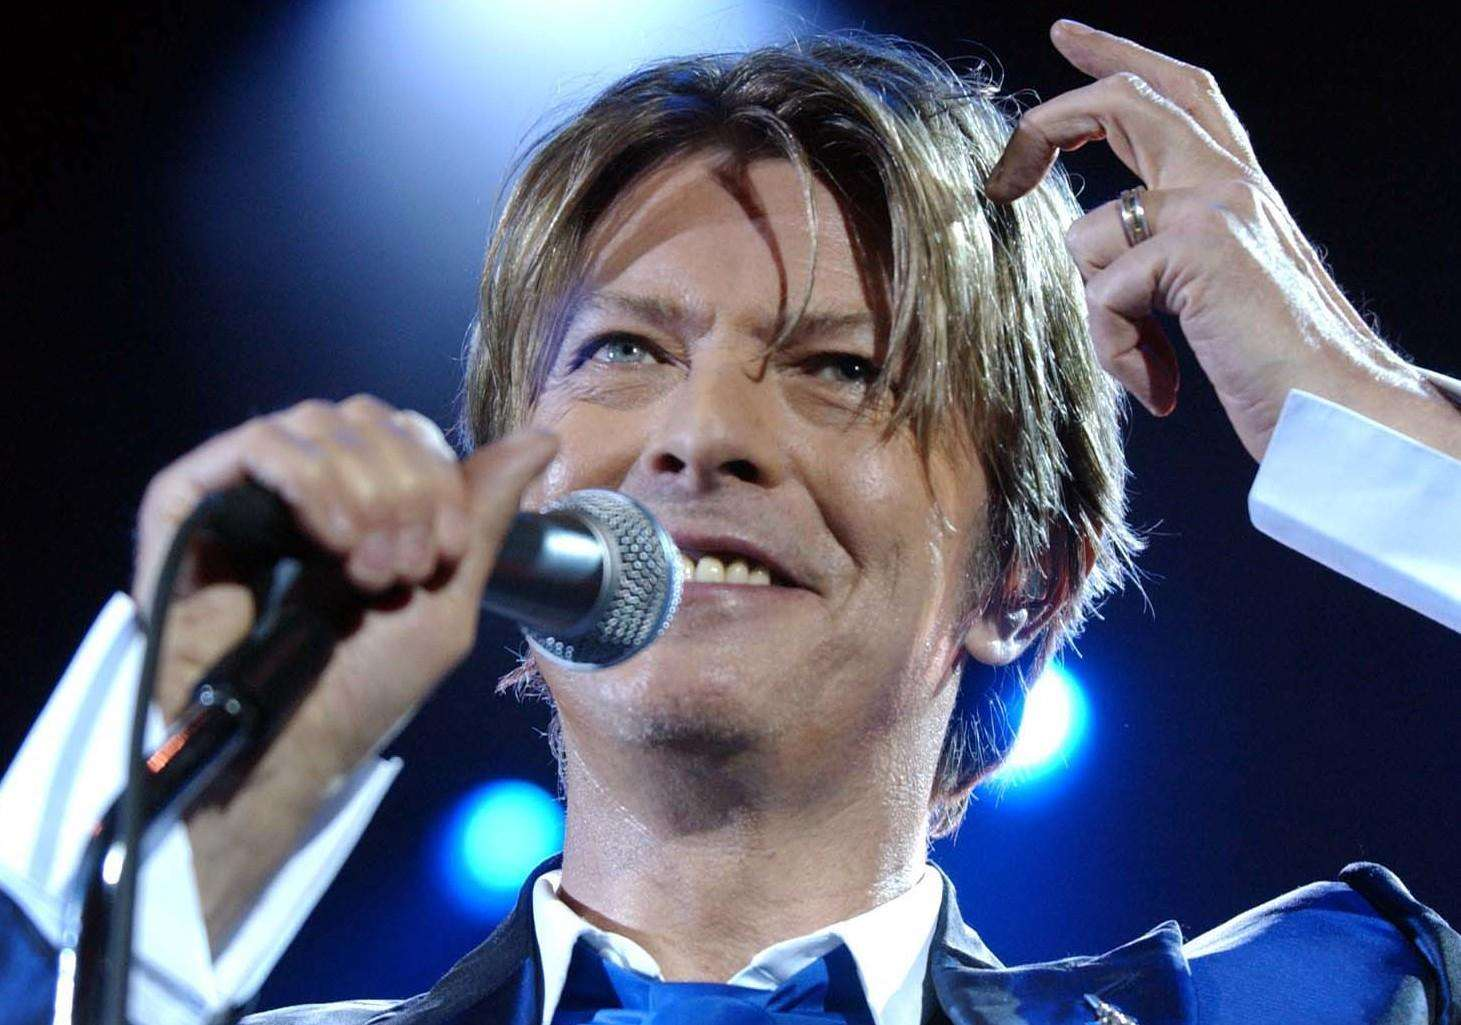 David Bowie lived in Maidstone for a short time in his youth - as well as performing in the town